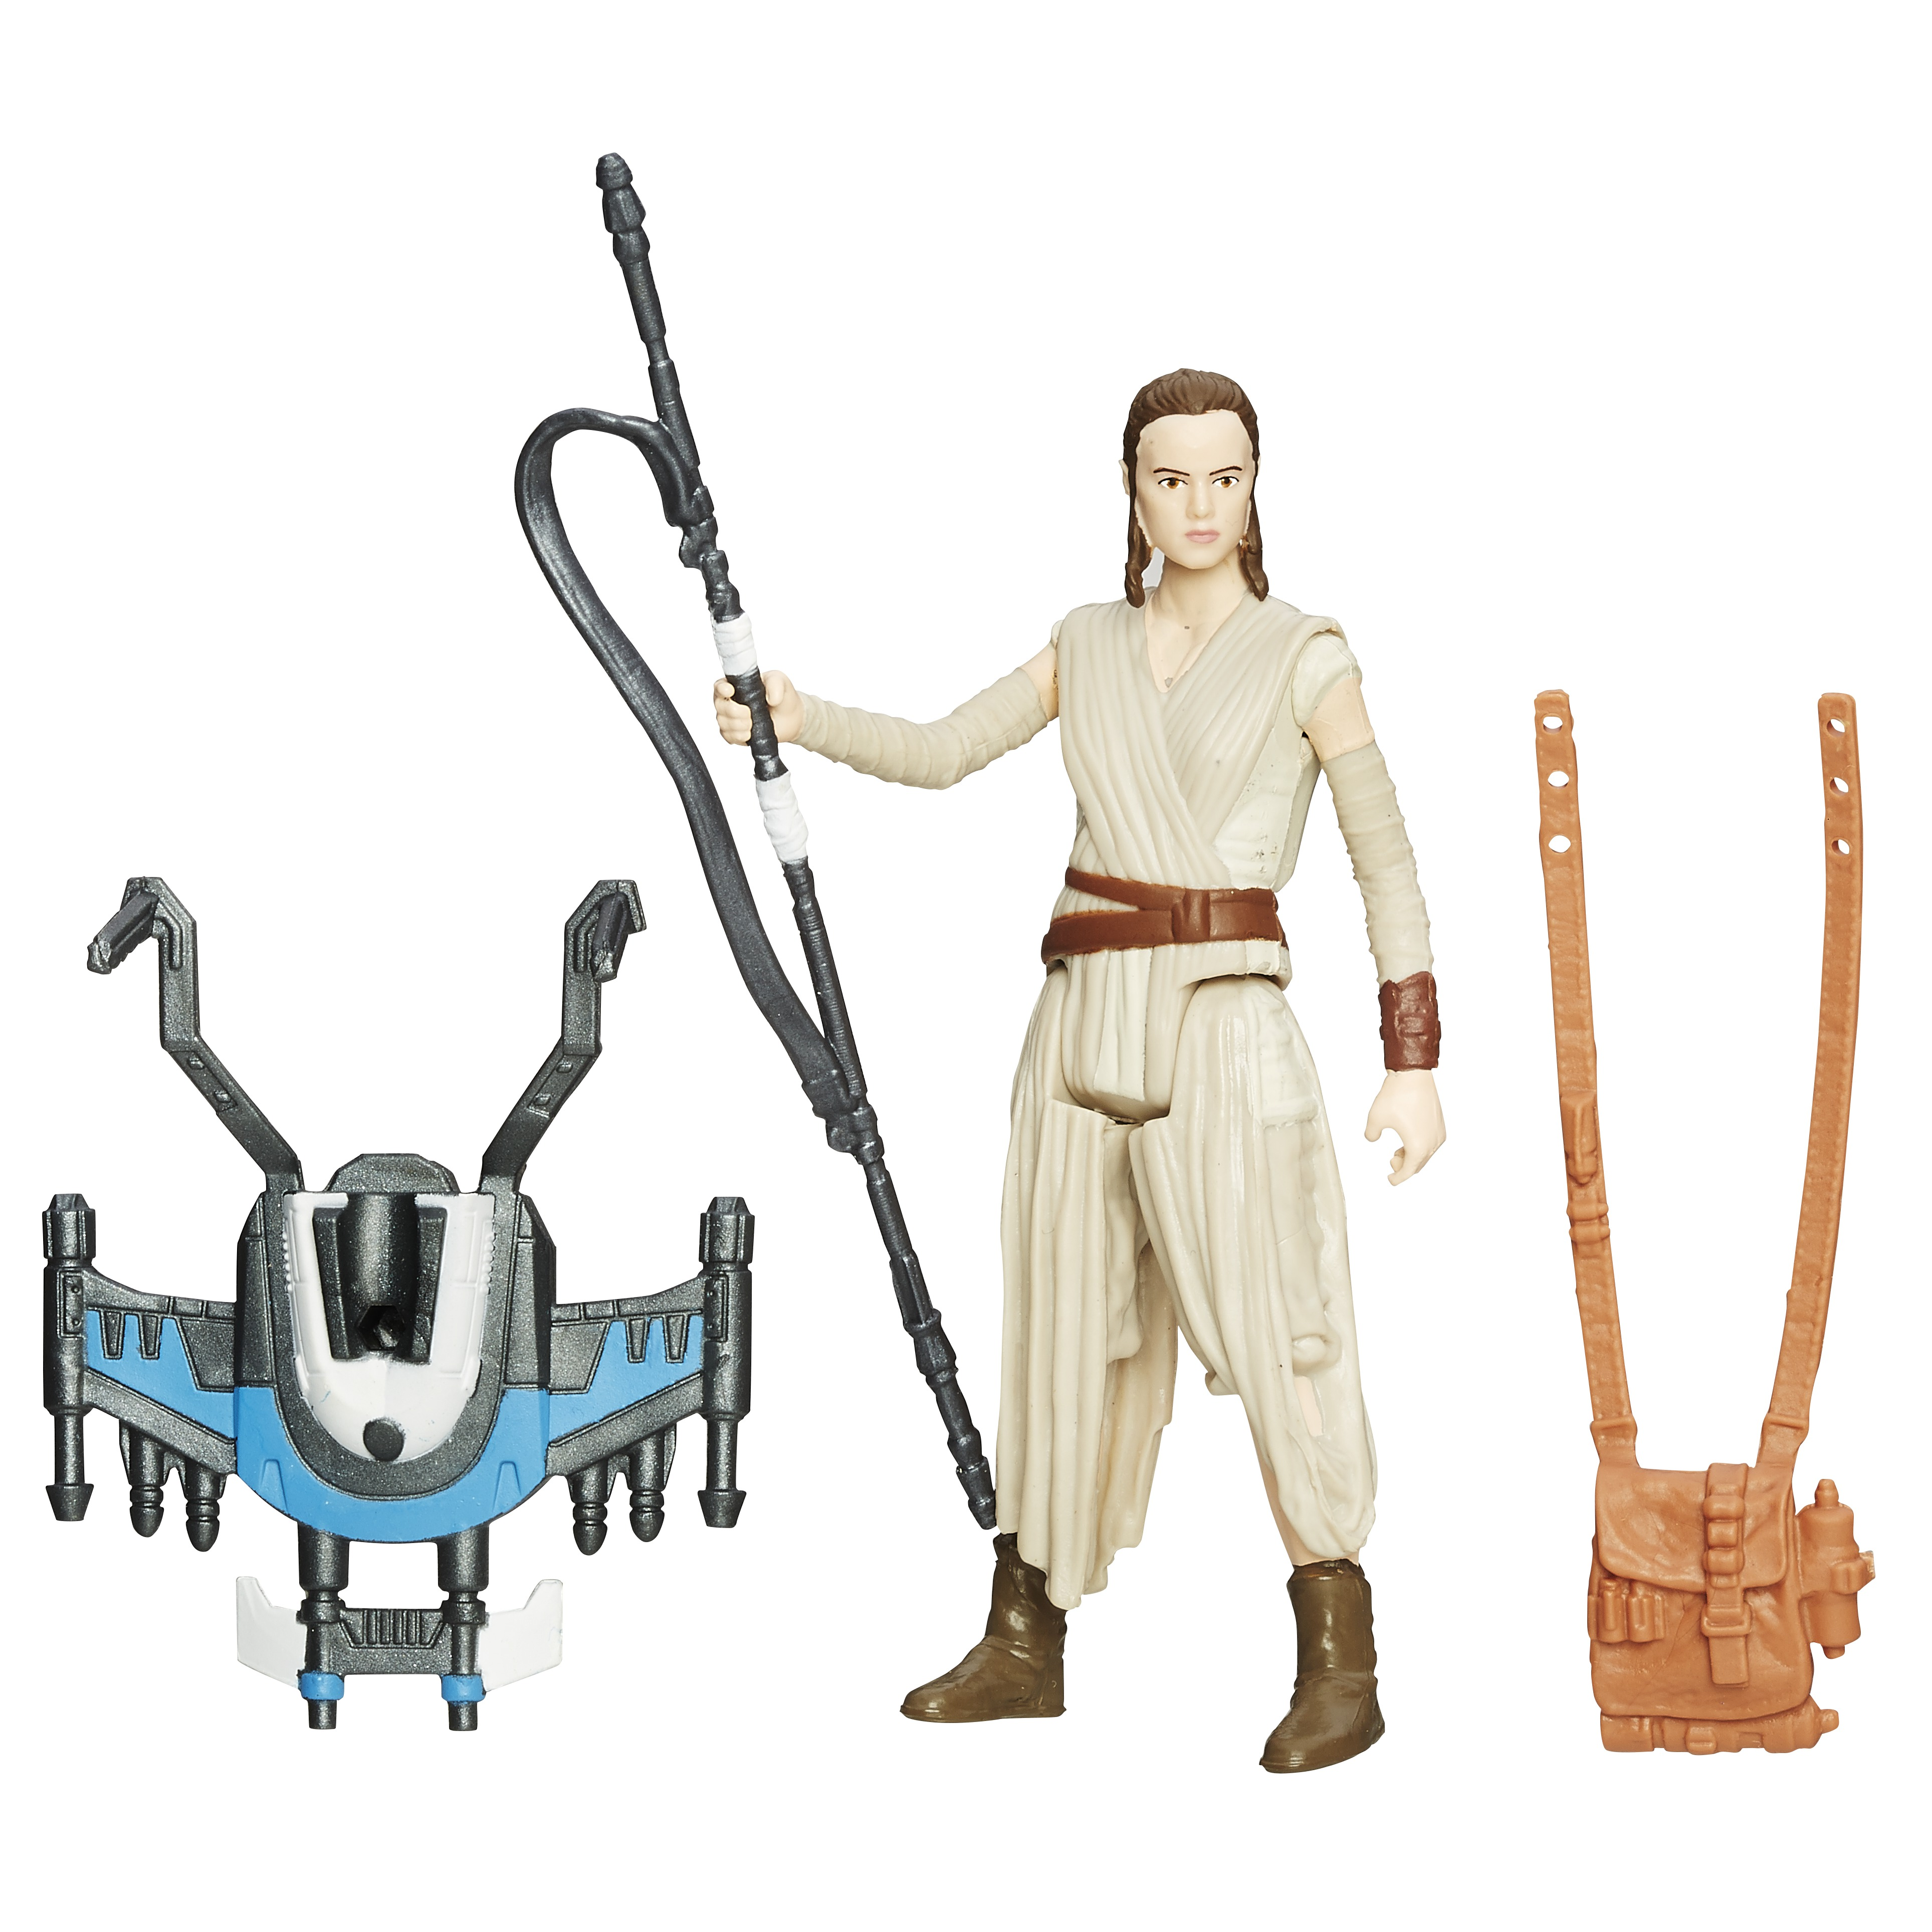 <b>Star Wars <i>The Force Awakens</i> Build a Weapon</b>; Rey